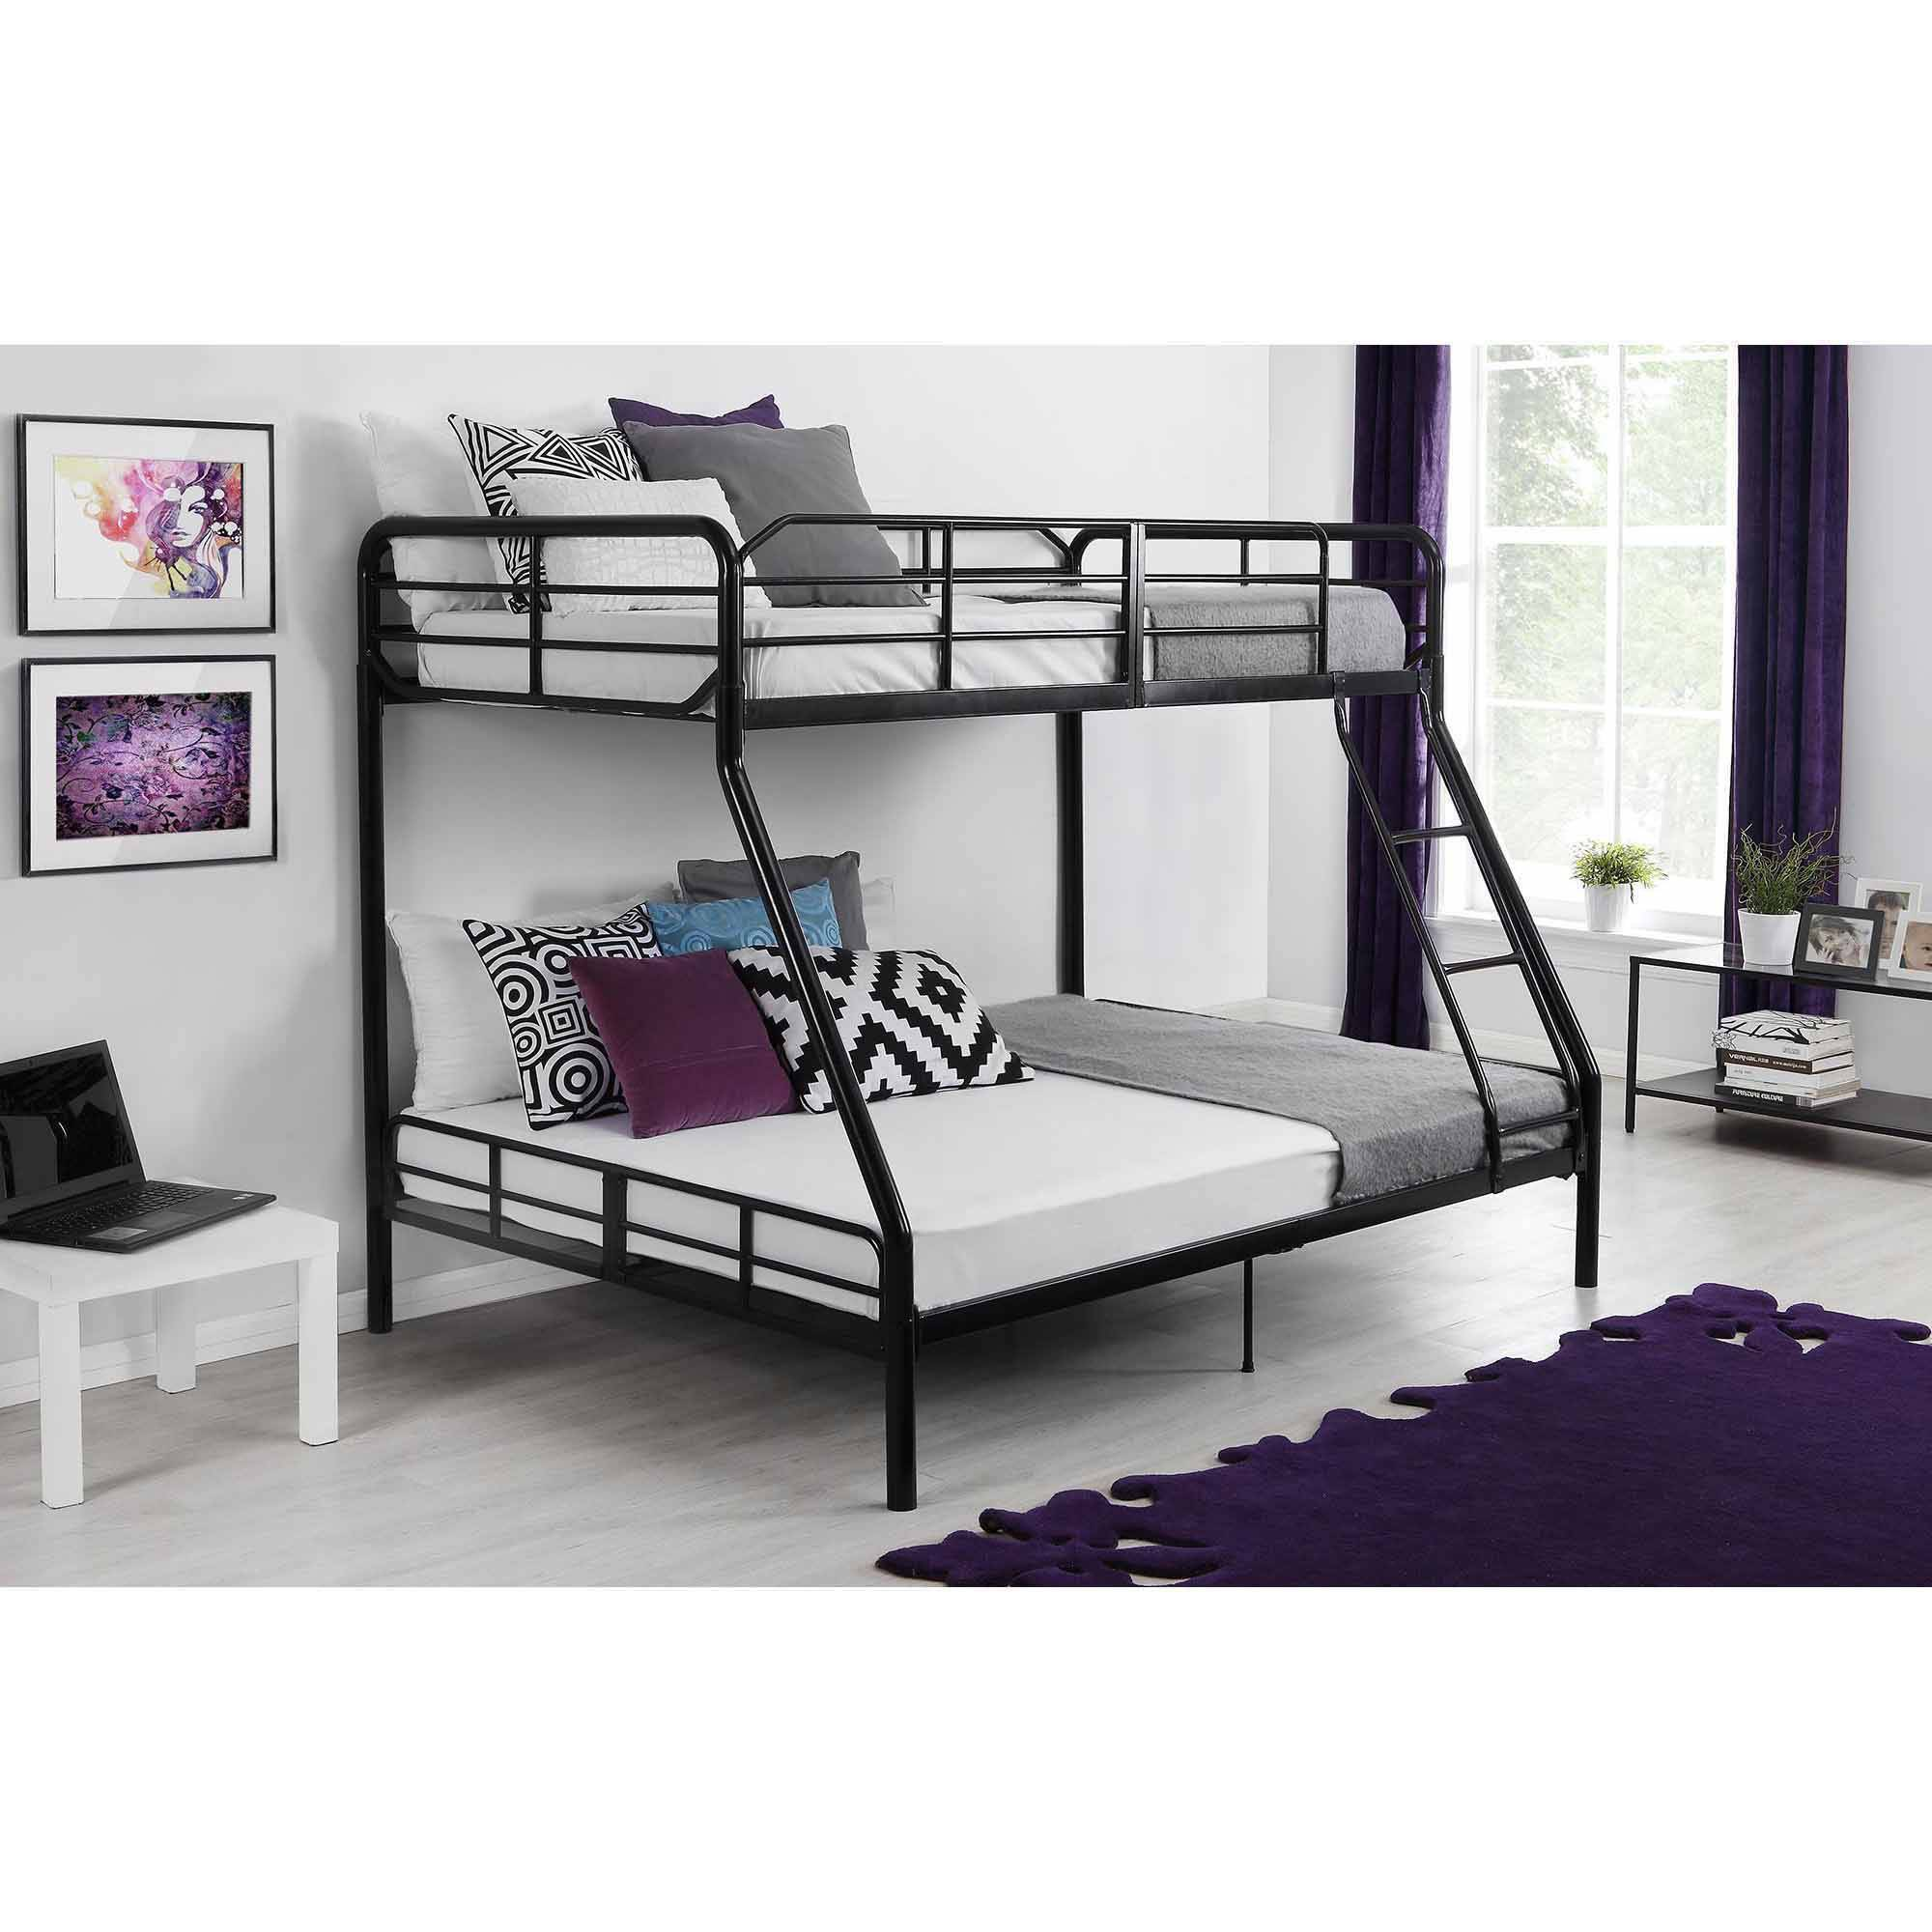 twin over full metal bunk bed w ladder kids bedroom furniture dorm loft 709788289309 ebay. Black Bedroom Furniture Sets. Home Design Ideas